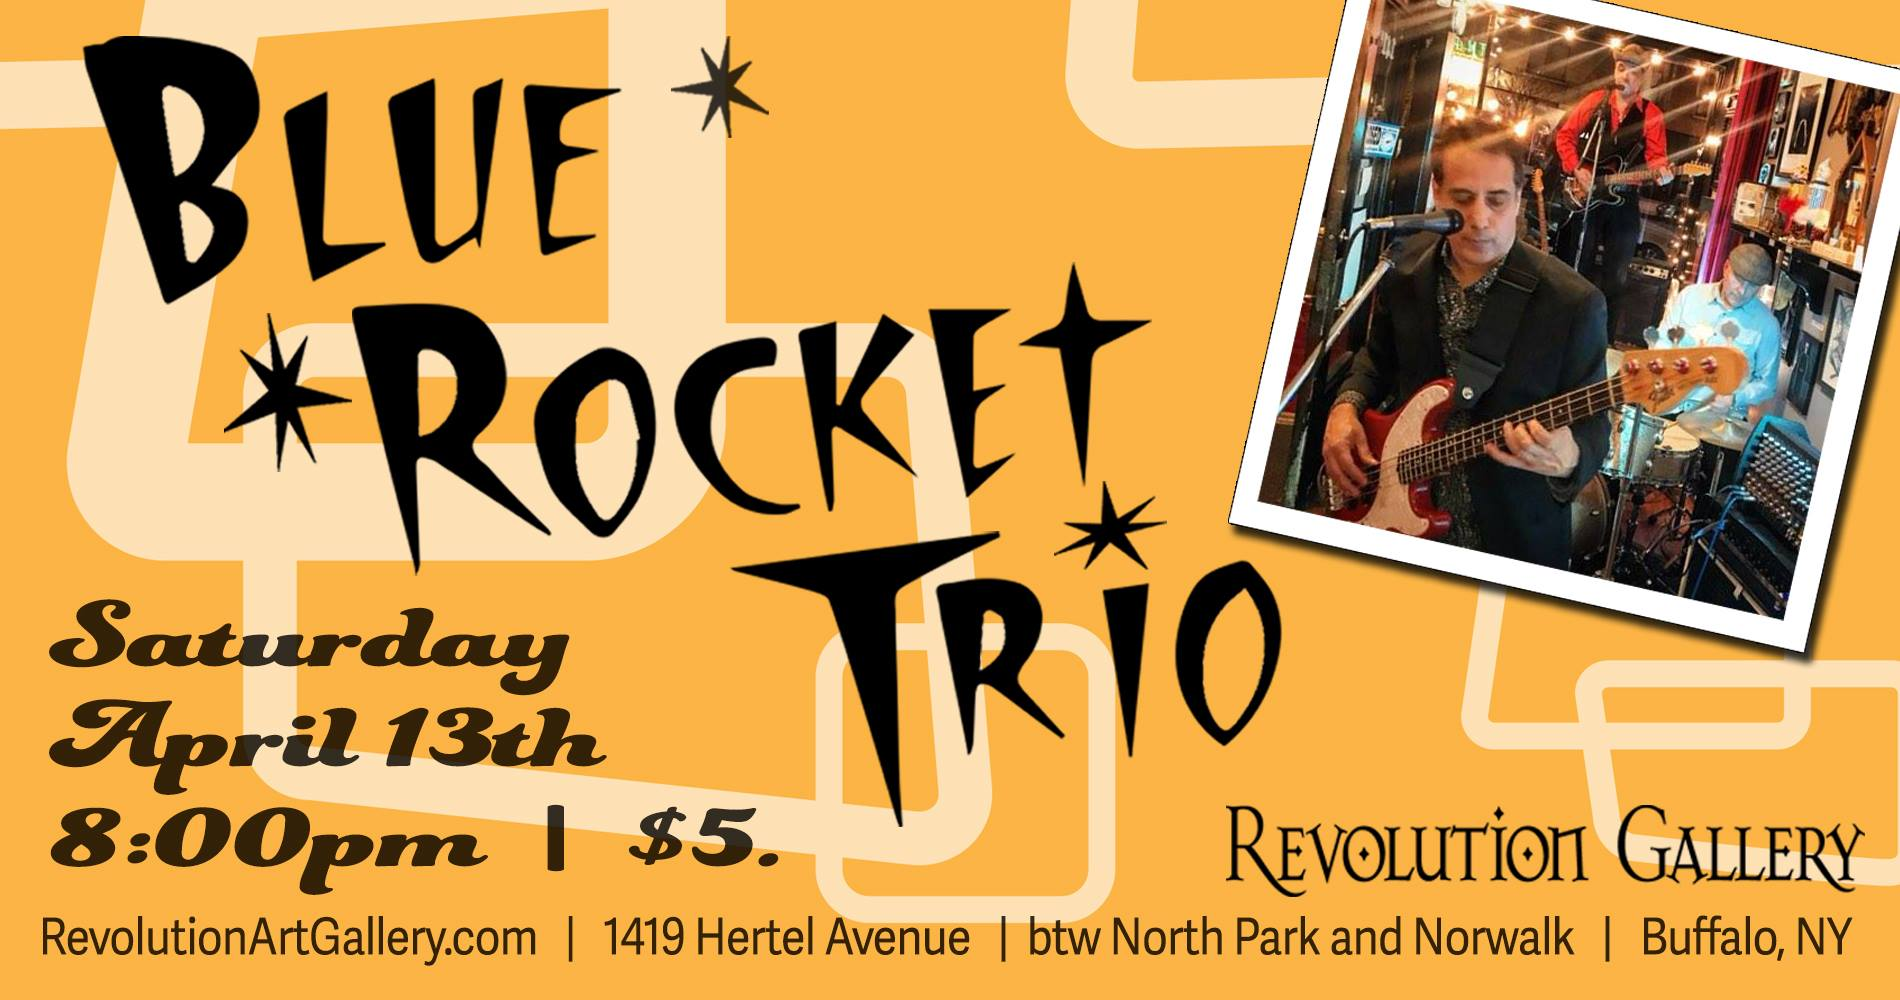 revolution-gallery-blue-rocket-trio